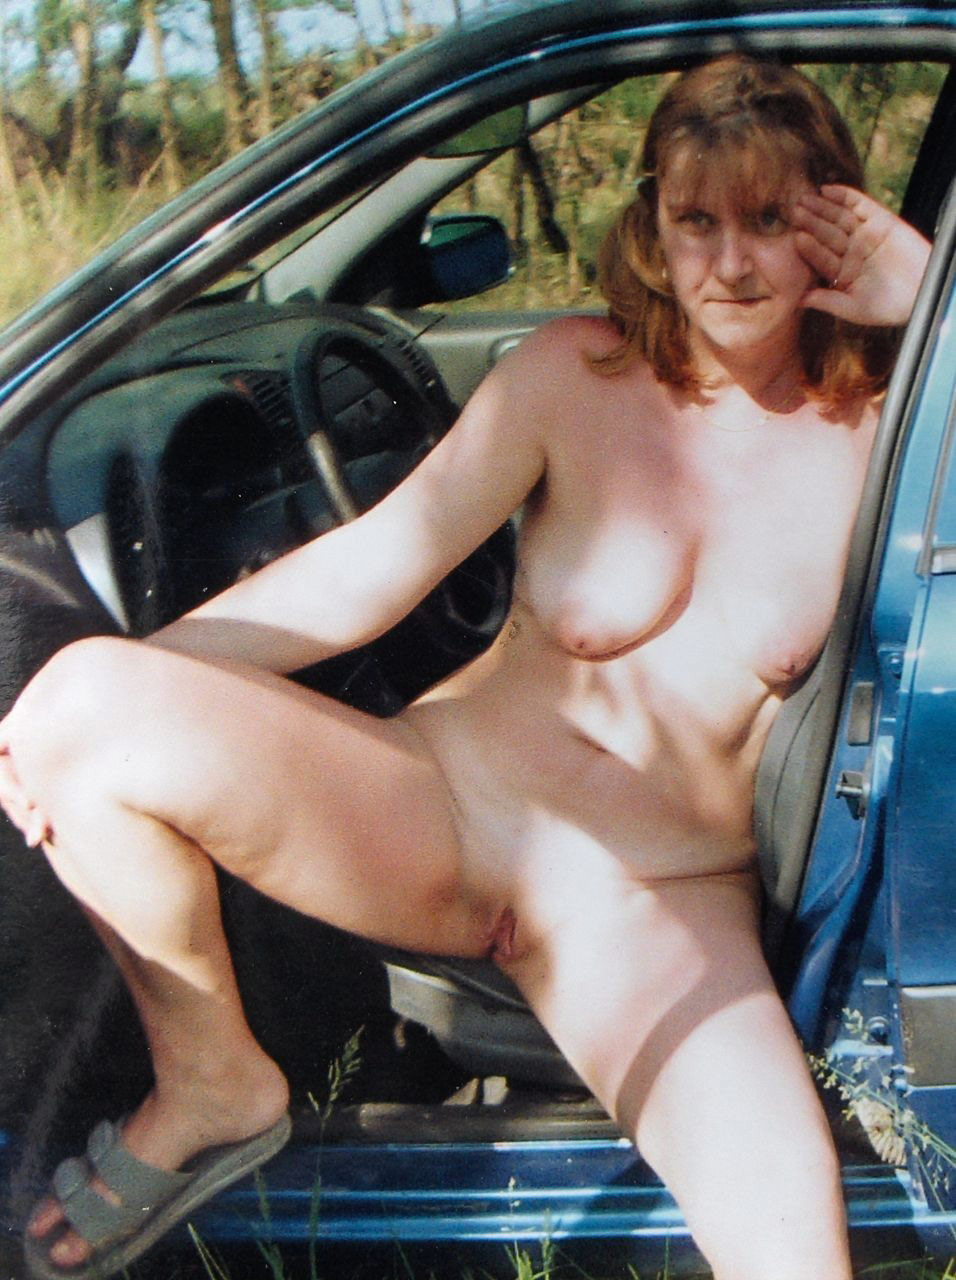 You are Girl drives car nude variant